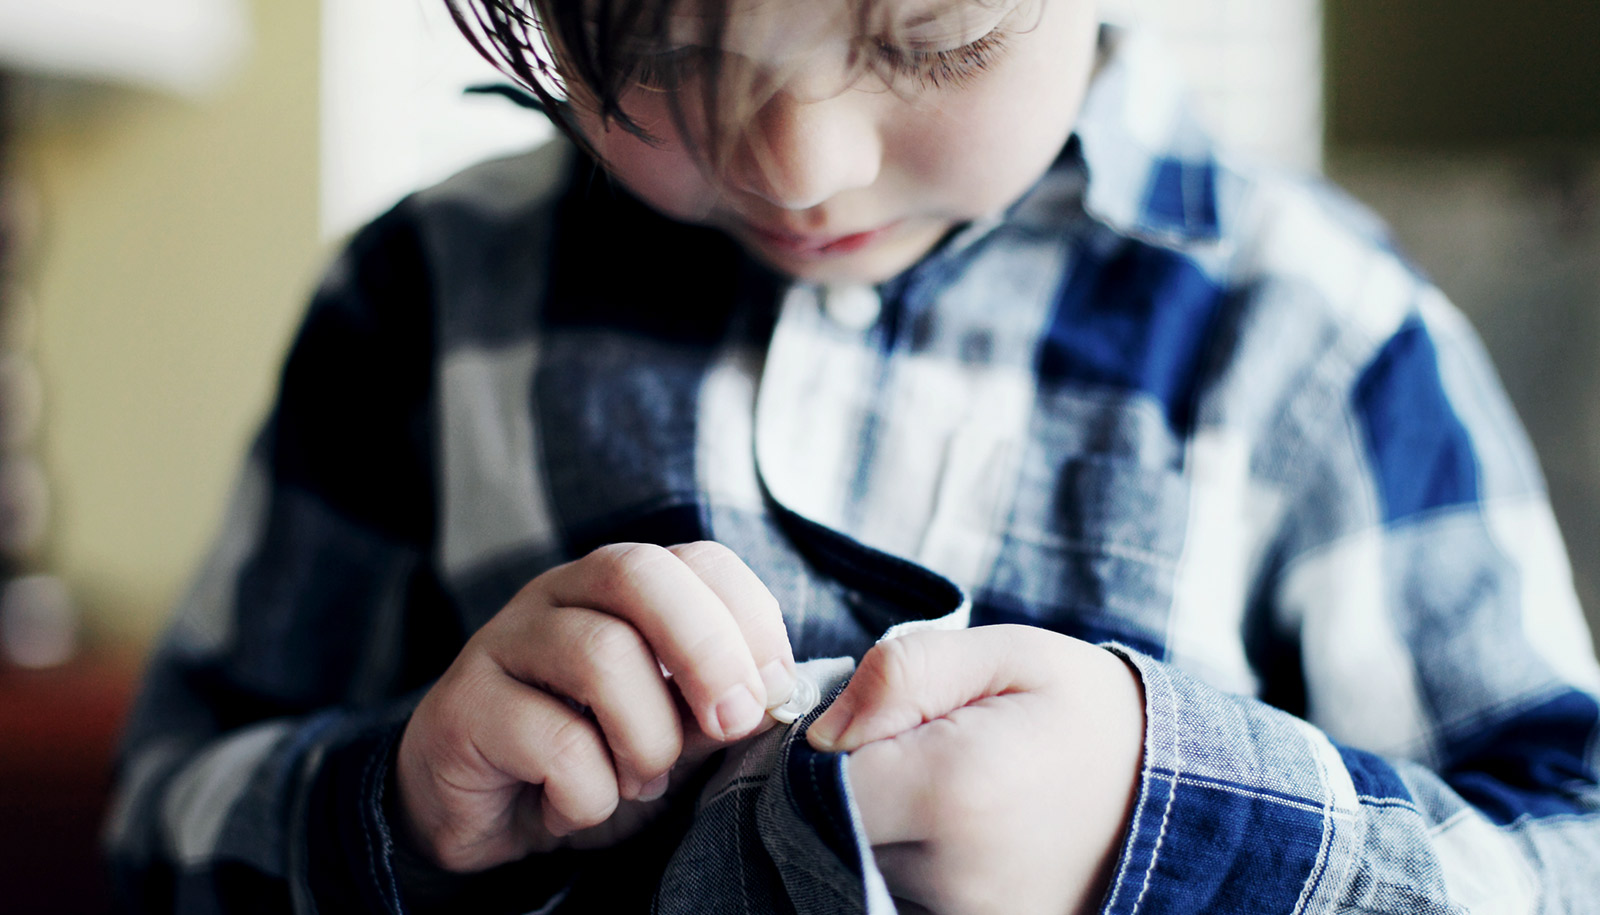 Fine motor skills of kids with autism can predict language